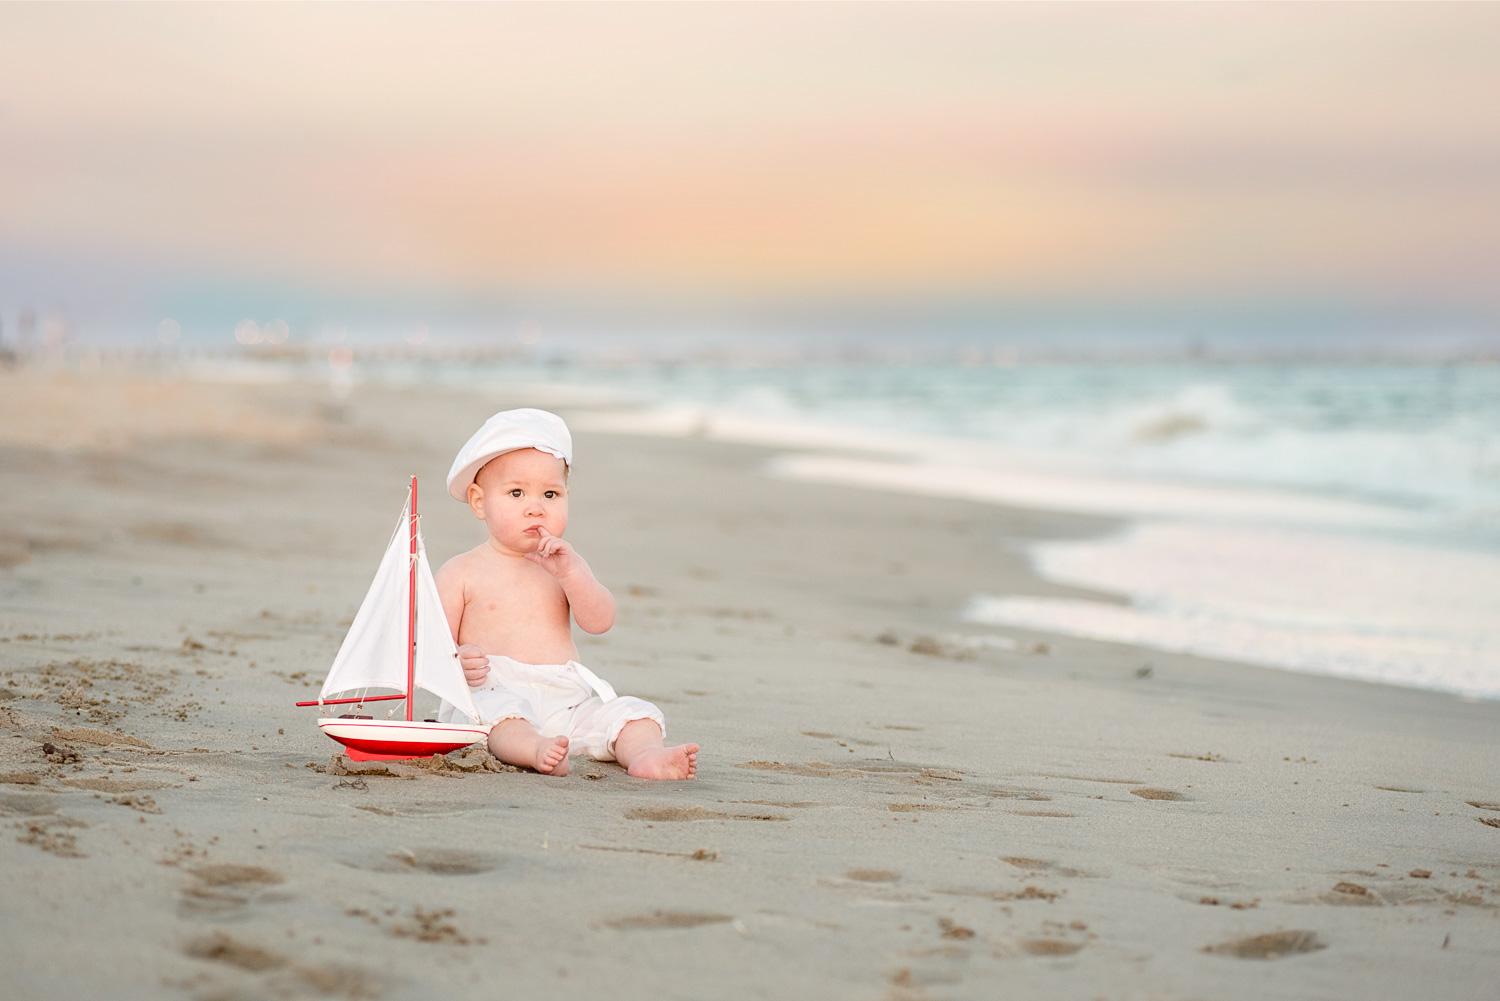 Portrait of baby in sand at sunset beach session at Coney Island Beach taken by Picadilly Studios